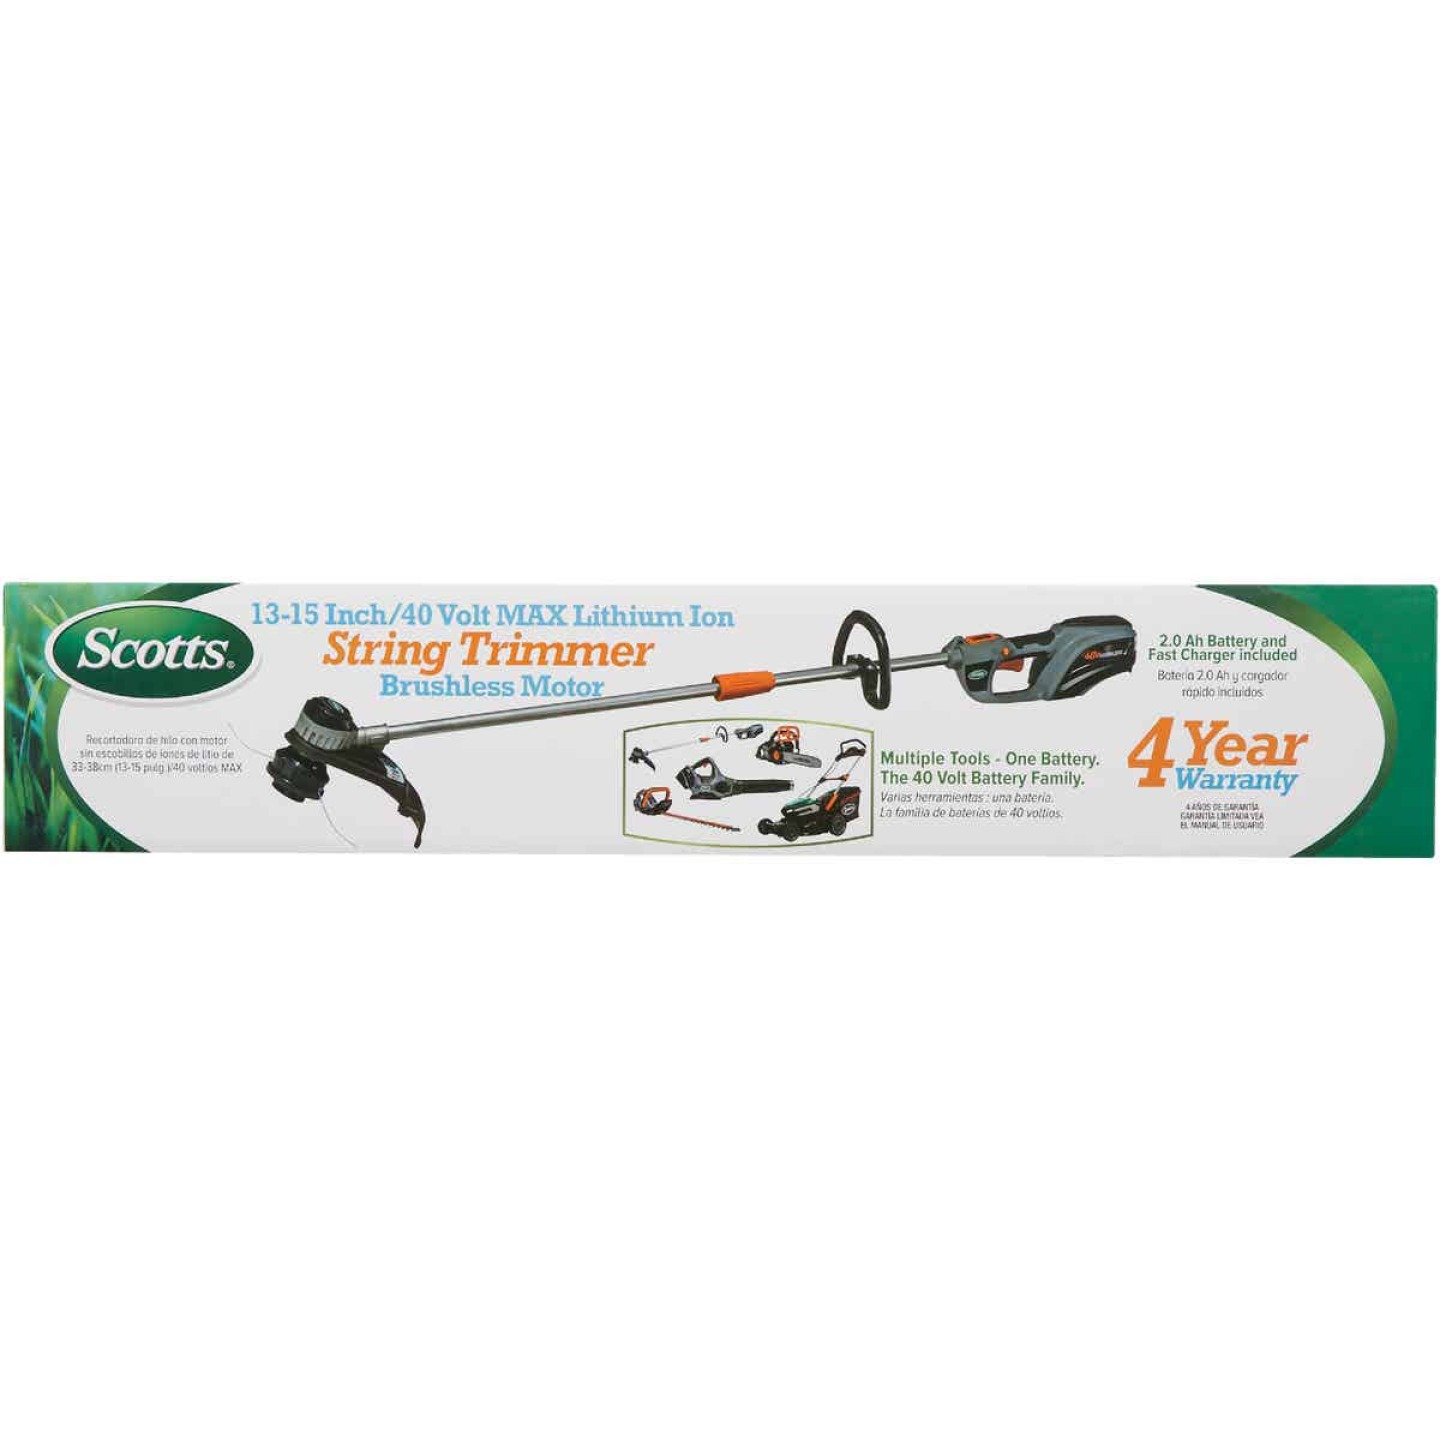 Scotts 15 In. 40 Volt Lithium Ion Cordless String Trimmer Image 2